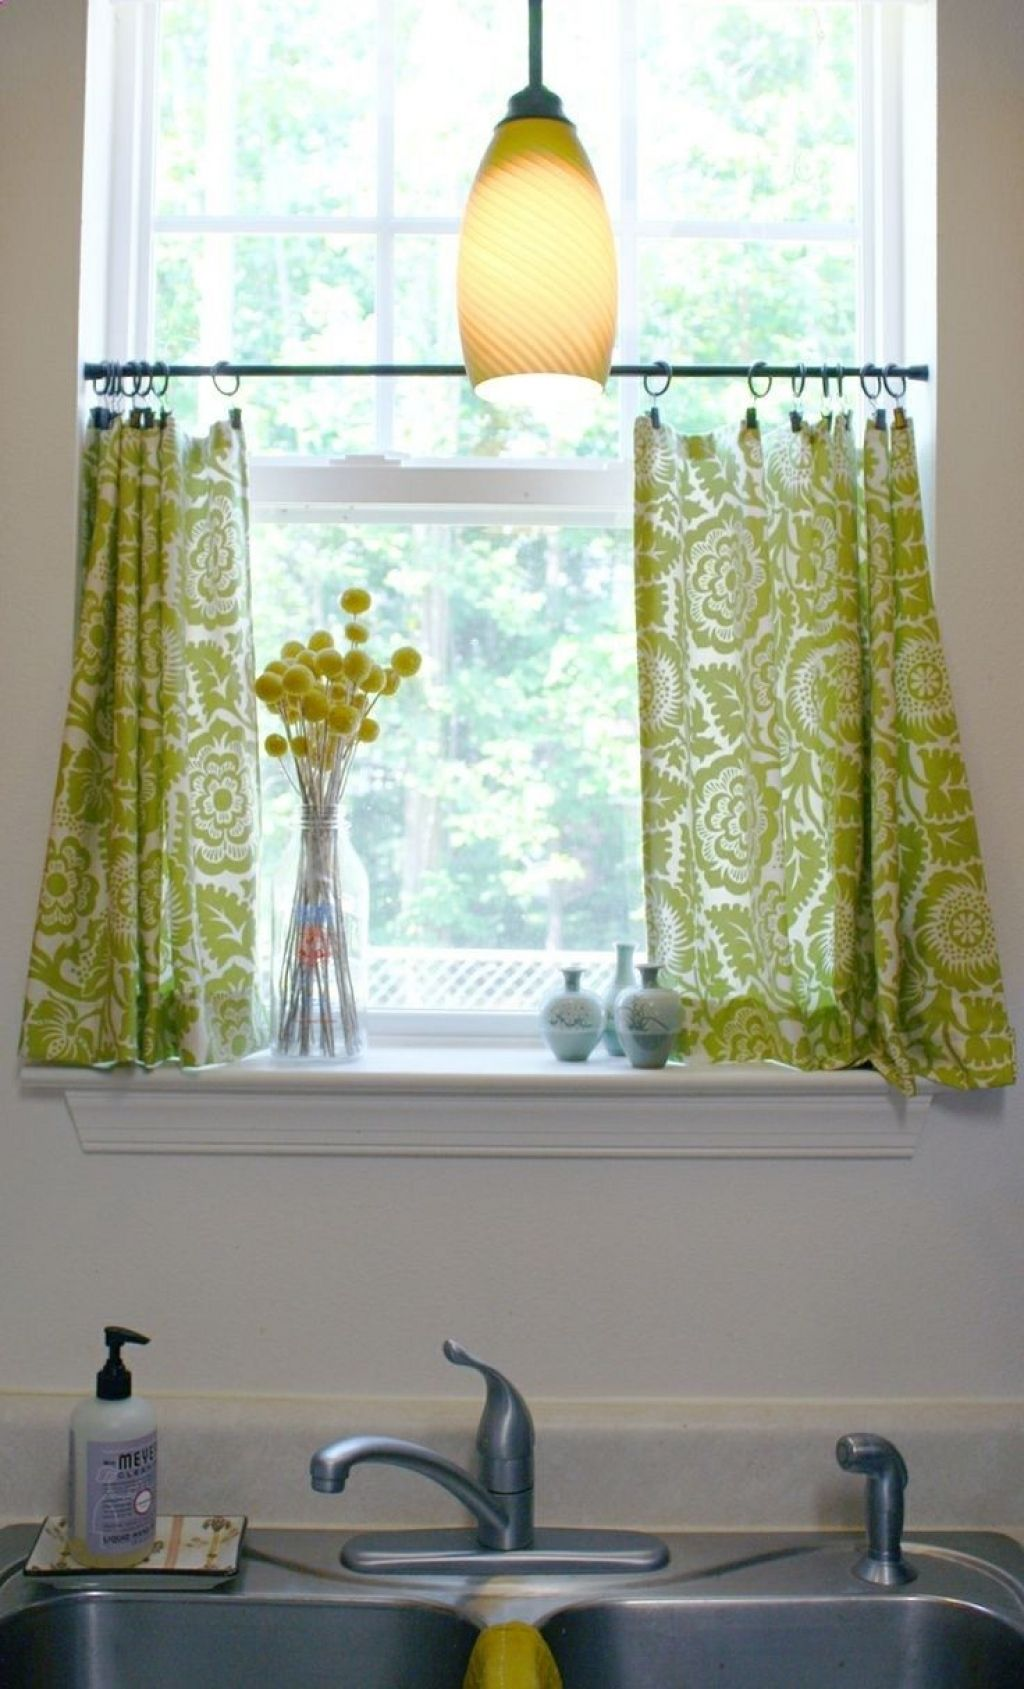 Image Result For Small Window Curtain Ideas Kitchen Window